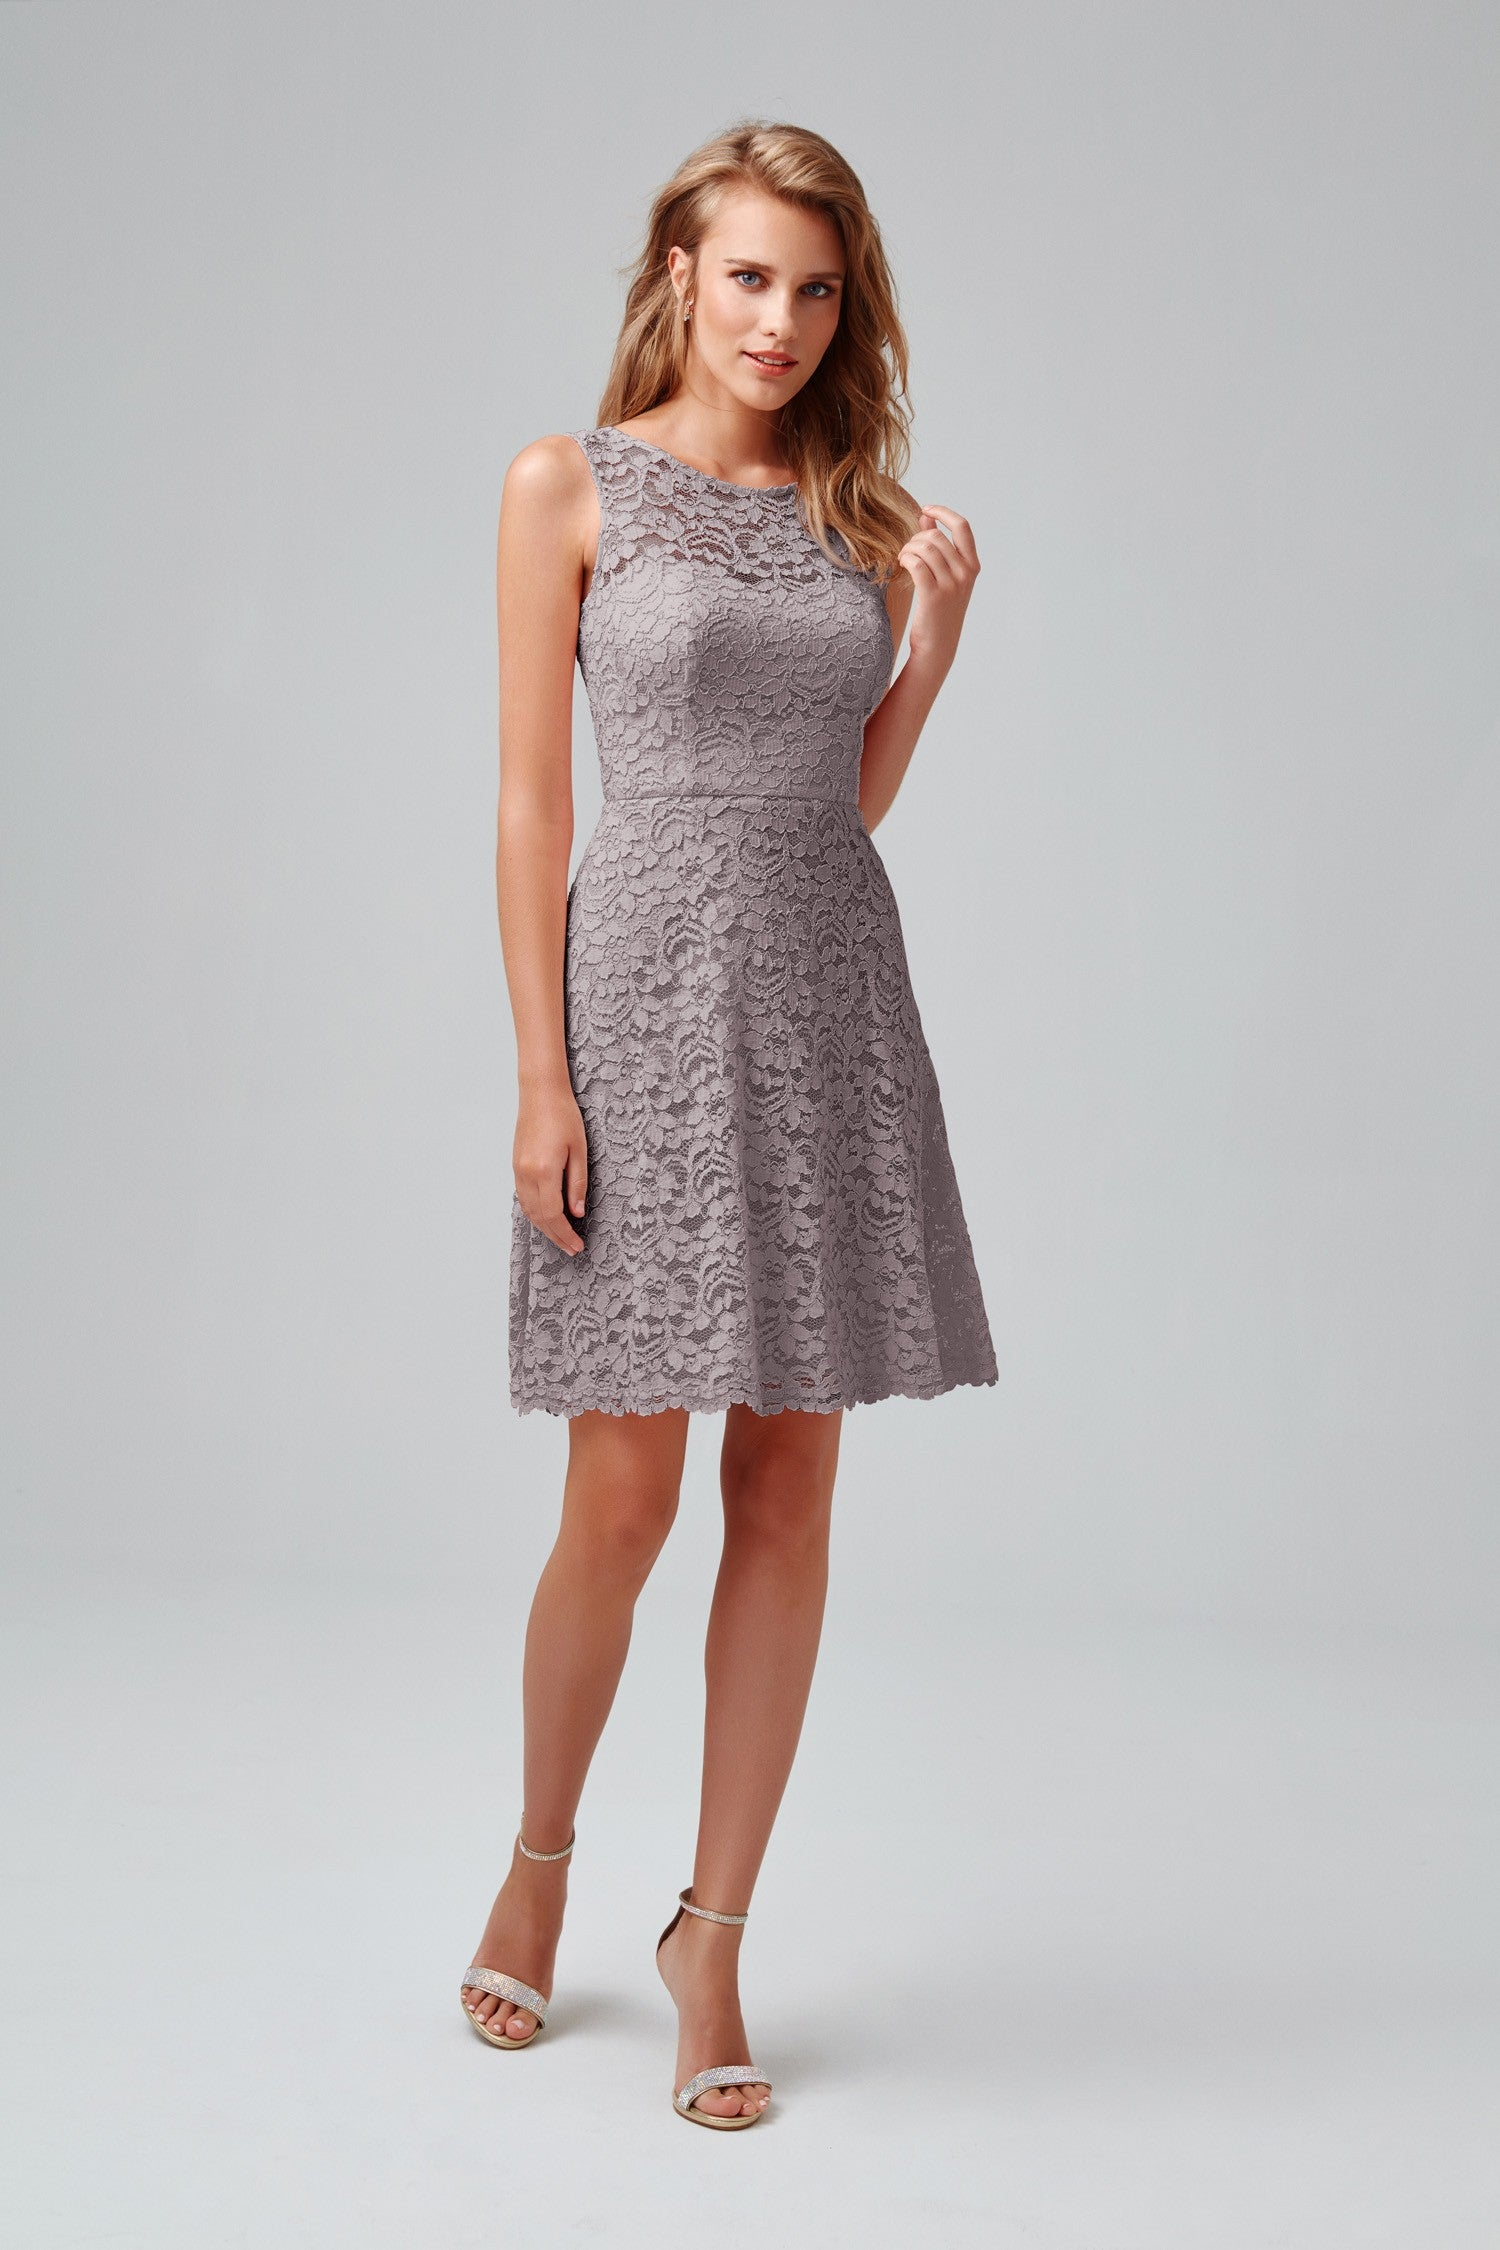 Short Sleeveless All Over Lace Bridesmaid Dress-F18031